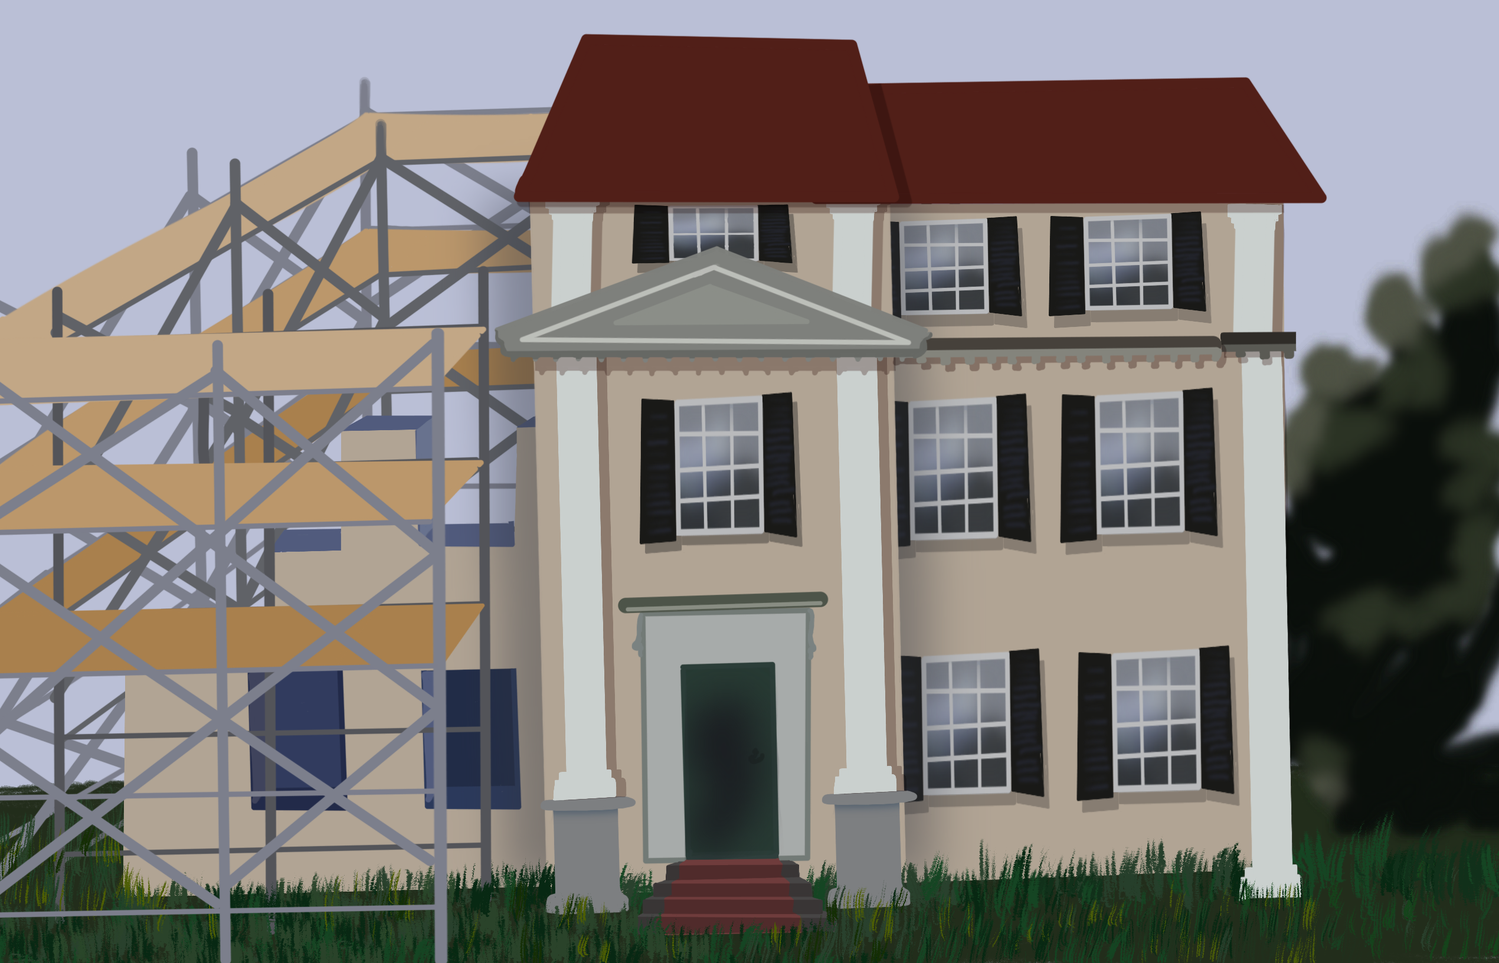 Adams House is currently undergoing renovations as part of the University's house renewal effort.